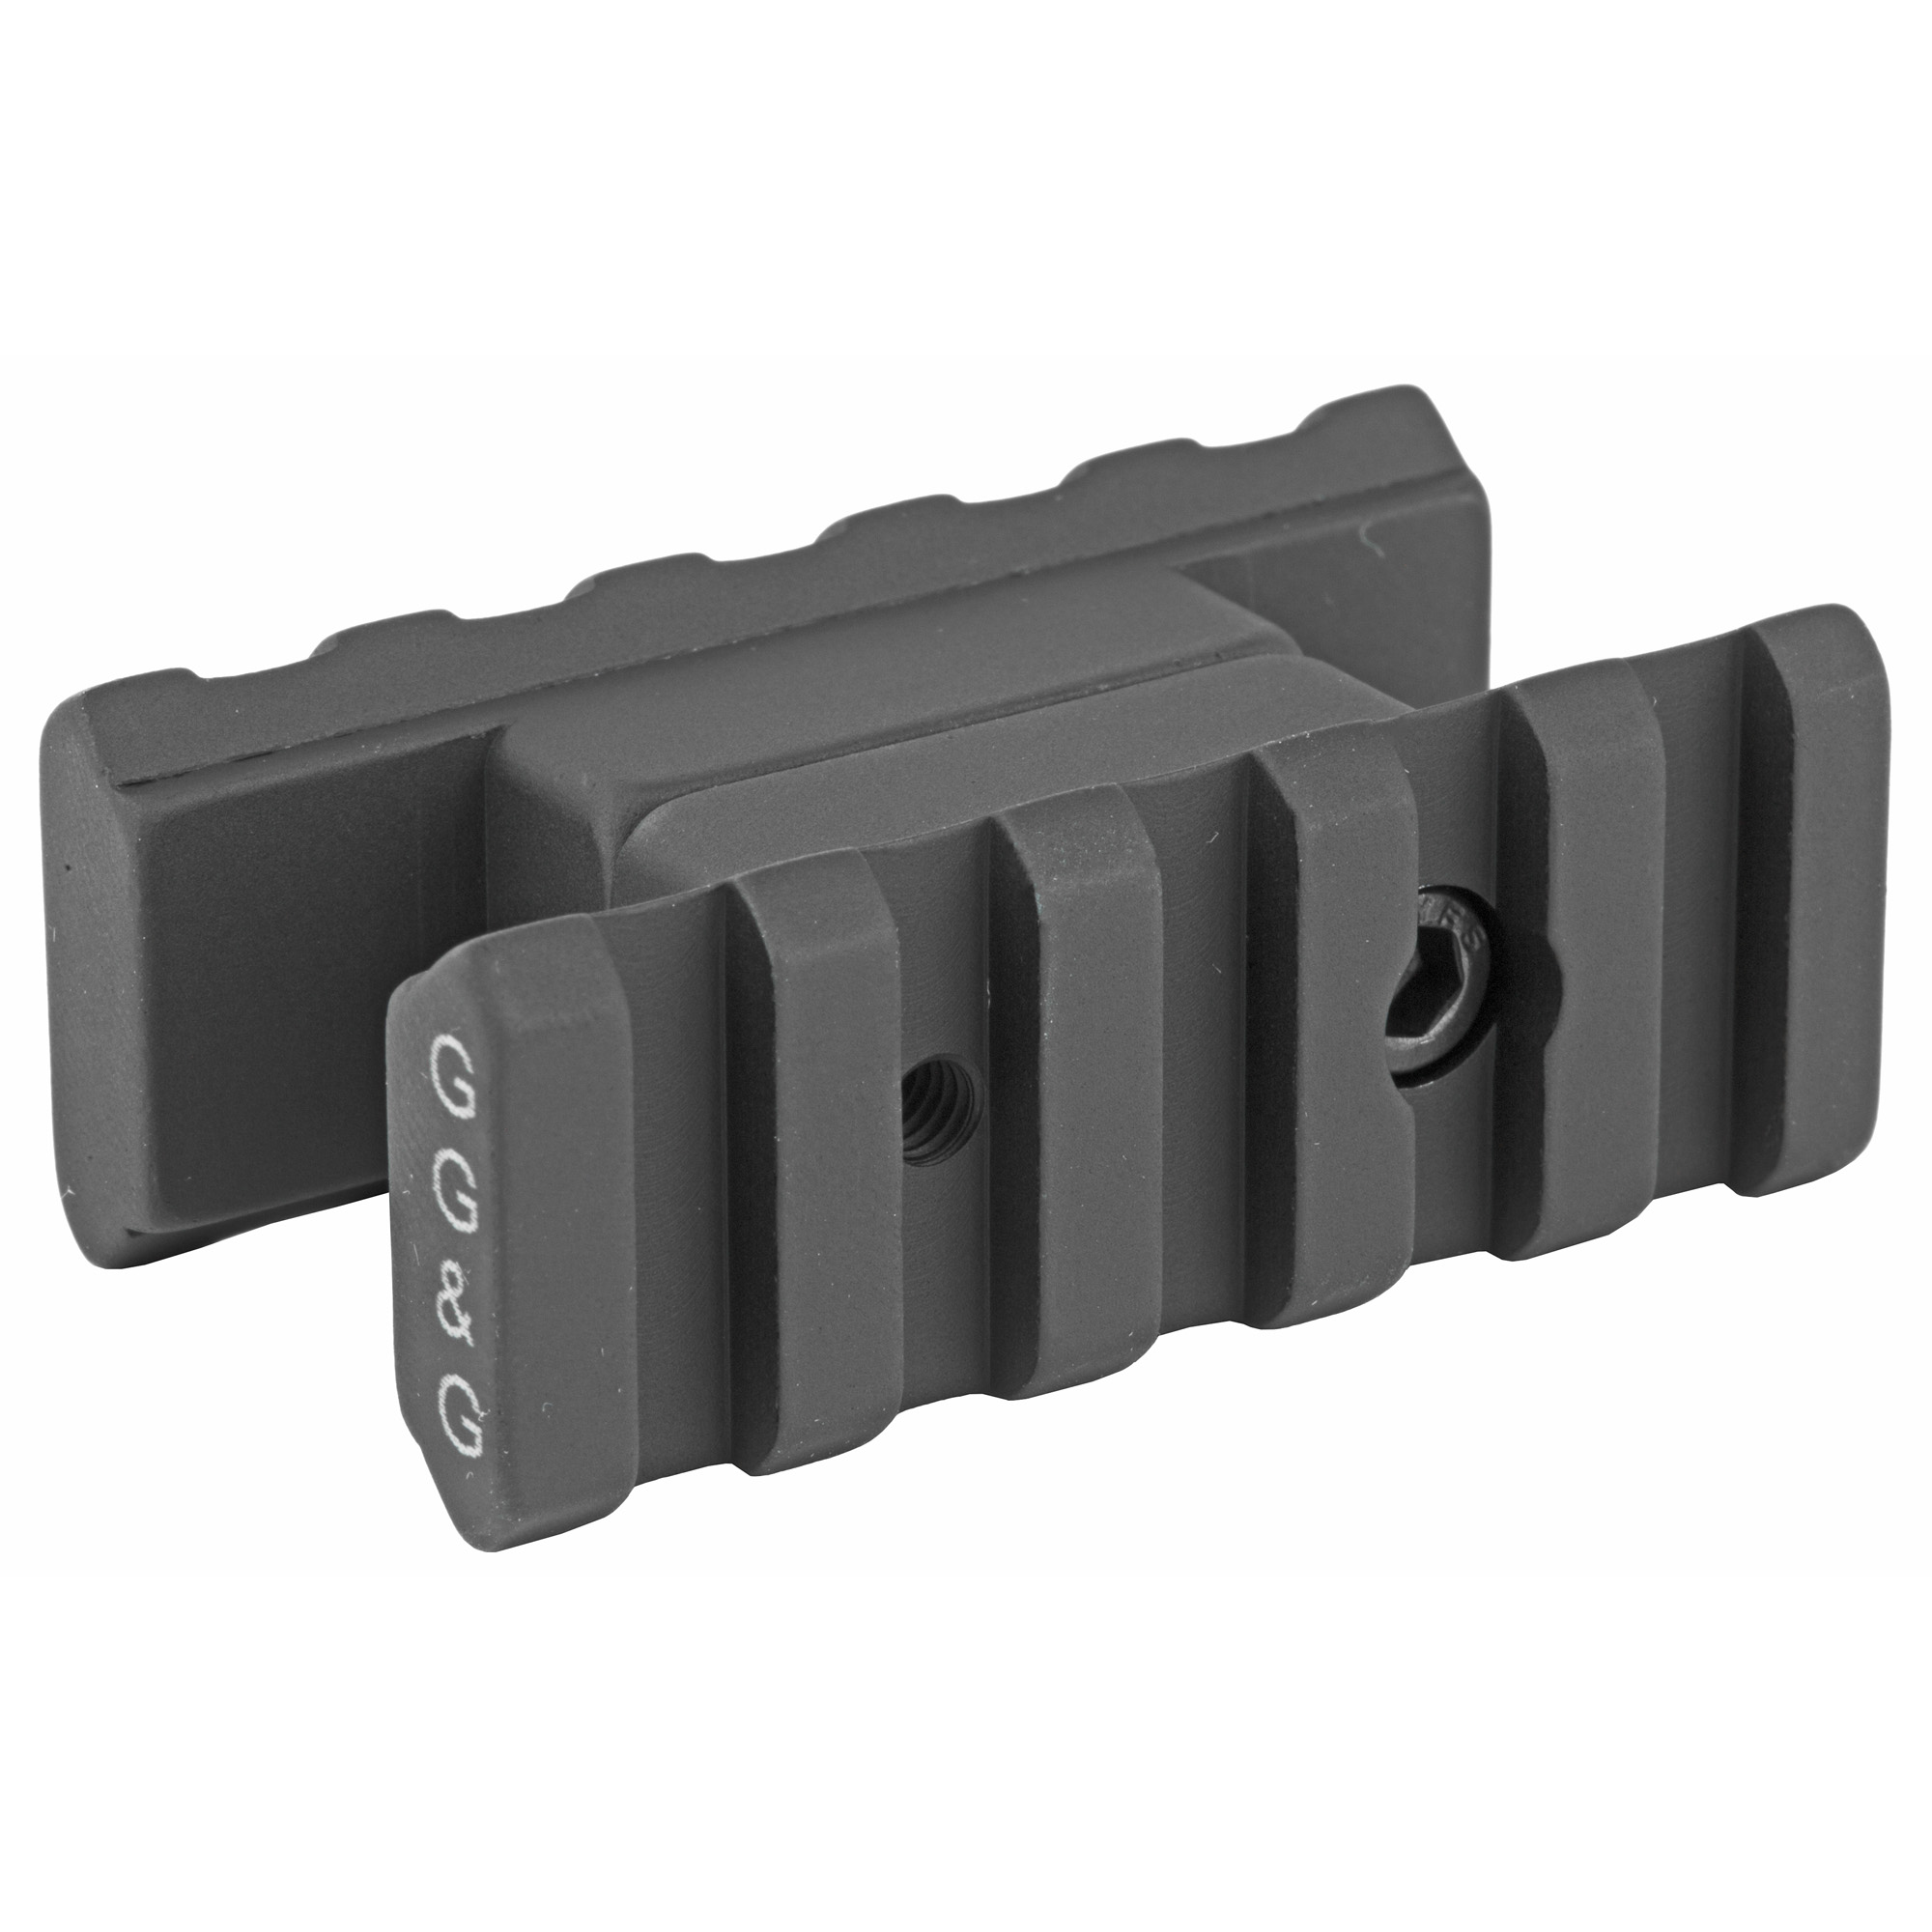 """GG&G's """"Dually"""" AR-15 Dual Rail Front Sight Accessory Mount provides the end user with a lightweight"""" sturdy"""" versatile and inexpensive mounting system designed to accommodate dual flashlight set ups"""" or light and laser combinations. Mounted to the AR15/M16 front sight """"A-frame"""" front sight assembly"""" positions the tactical lights or lasers at eleven and one o'clock. These positions are light and laser positions most preferred by tactical shooters in order to maximize the tactical advantage during dynamic room entries. Both rails are 2 1/8-inches long and are manufactured to meet MIL-STD-1913 and all edges are rounded and softened to protect the shooter."""